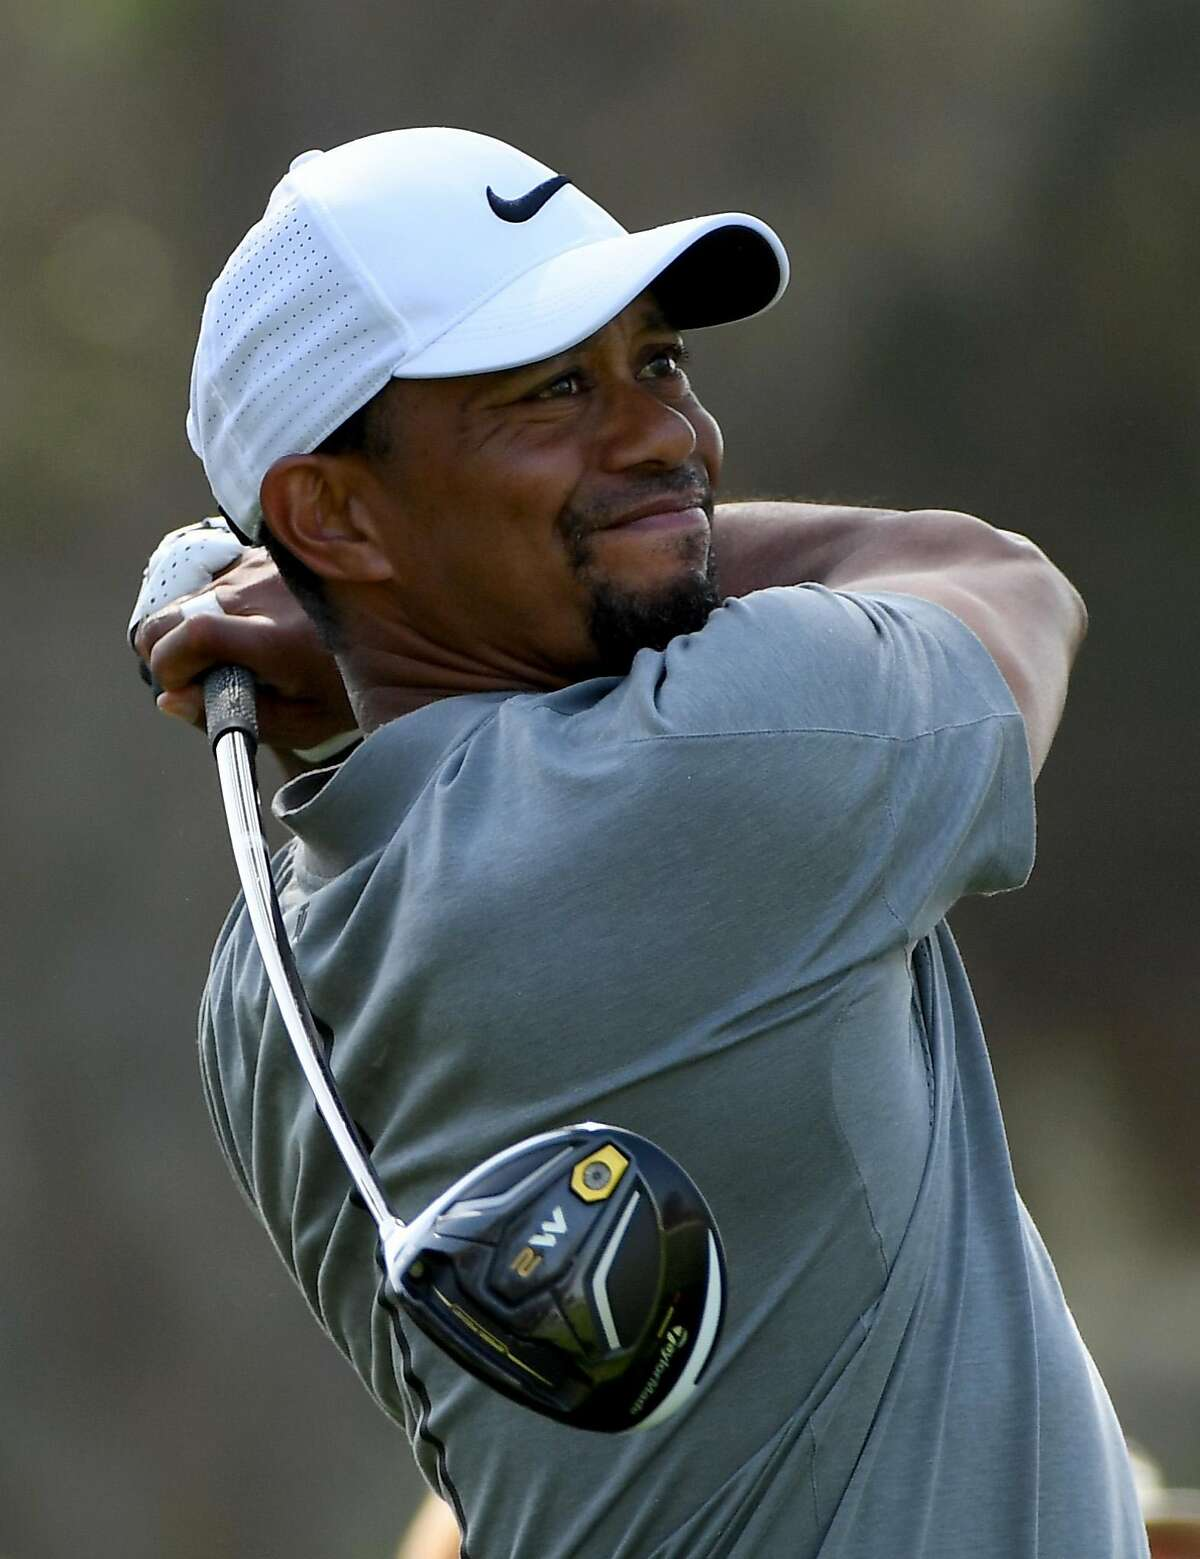 DUBAI, UNITED ARAB EMIRATES - FEBRUARY 01: Tiger Woods of the USA on the 18th tee during the pro-am event prior to the Omega Dubai Desert Classic at Emirates Golf Club on February 1, 2017 in Dubai, United Arab Emirates. (Photo by Ross Kinnaird/Getty Images)